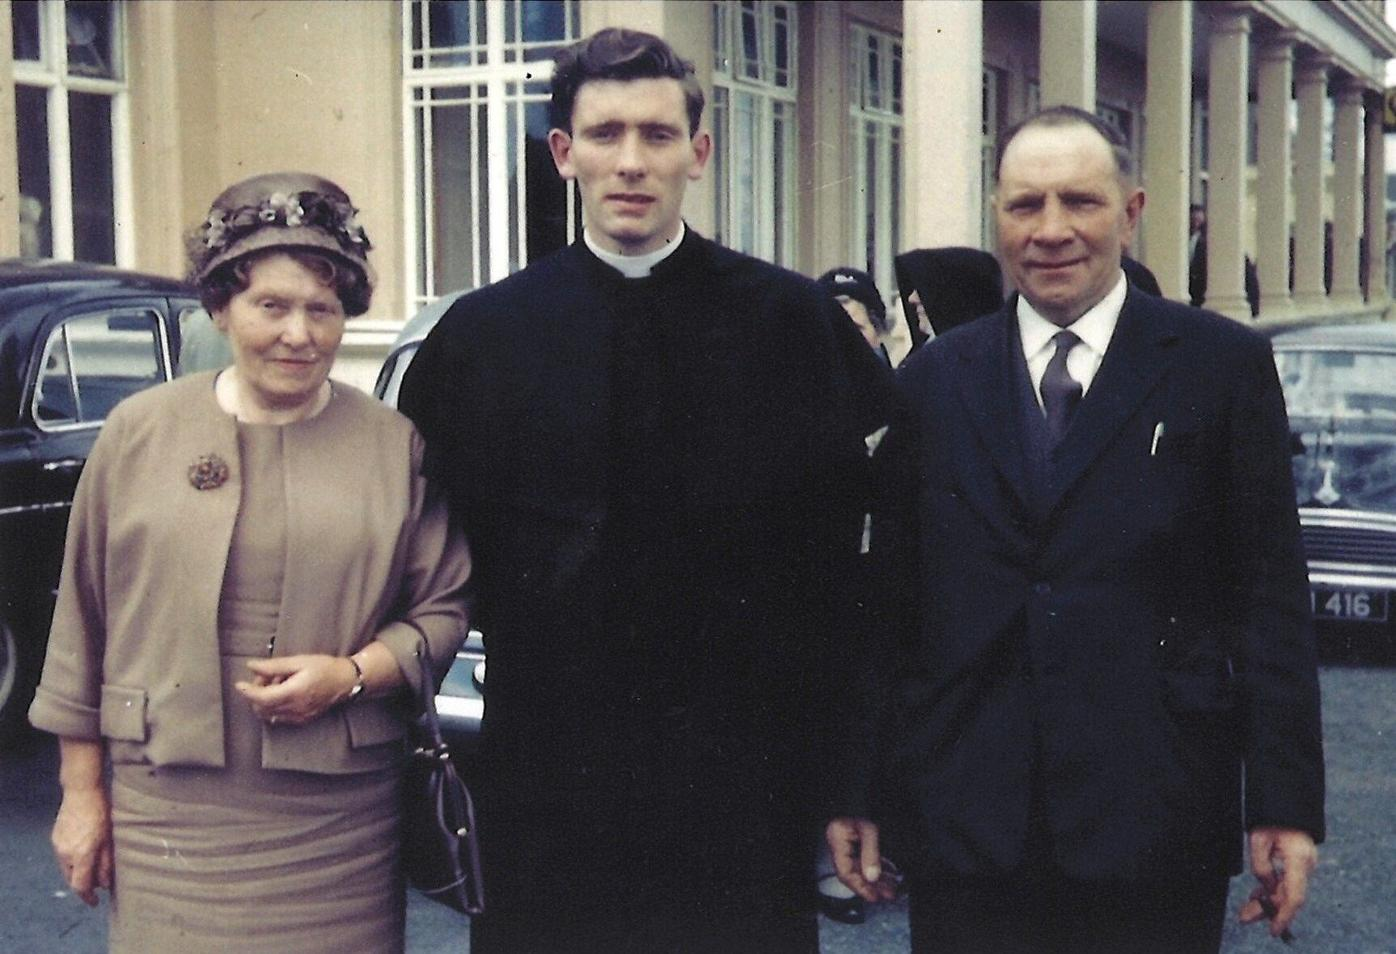 Monsignor John Bluett, June 13, 1963 on the day of his Ordination to the Priesthood, with his parents in Ireland. (COURTESY)